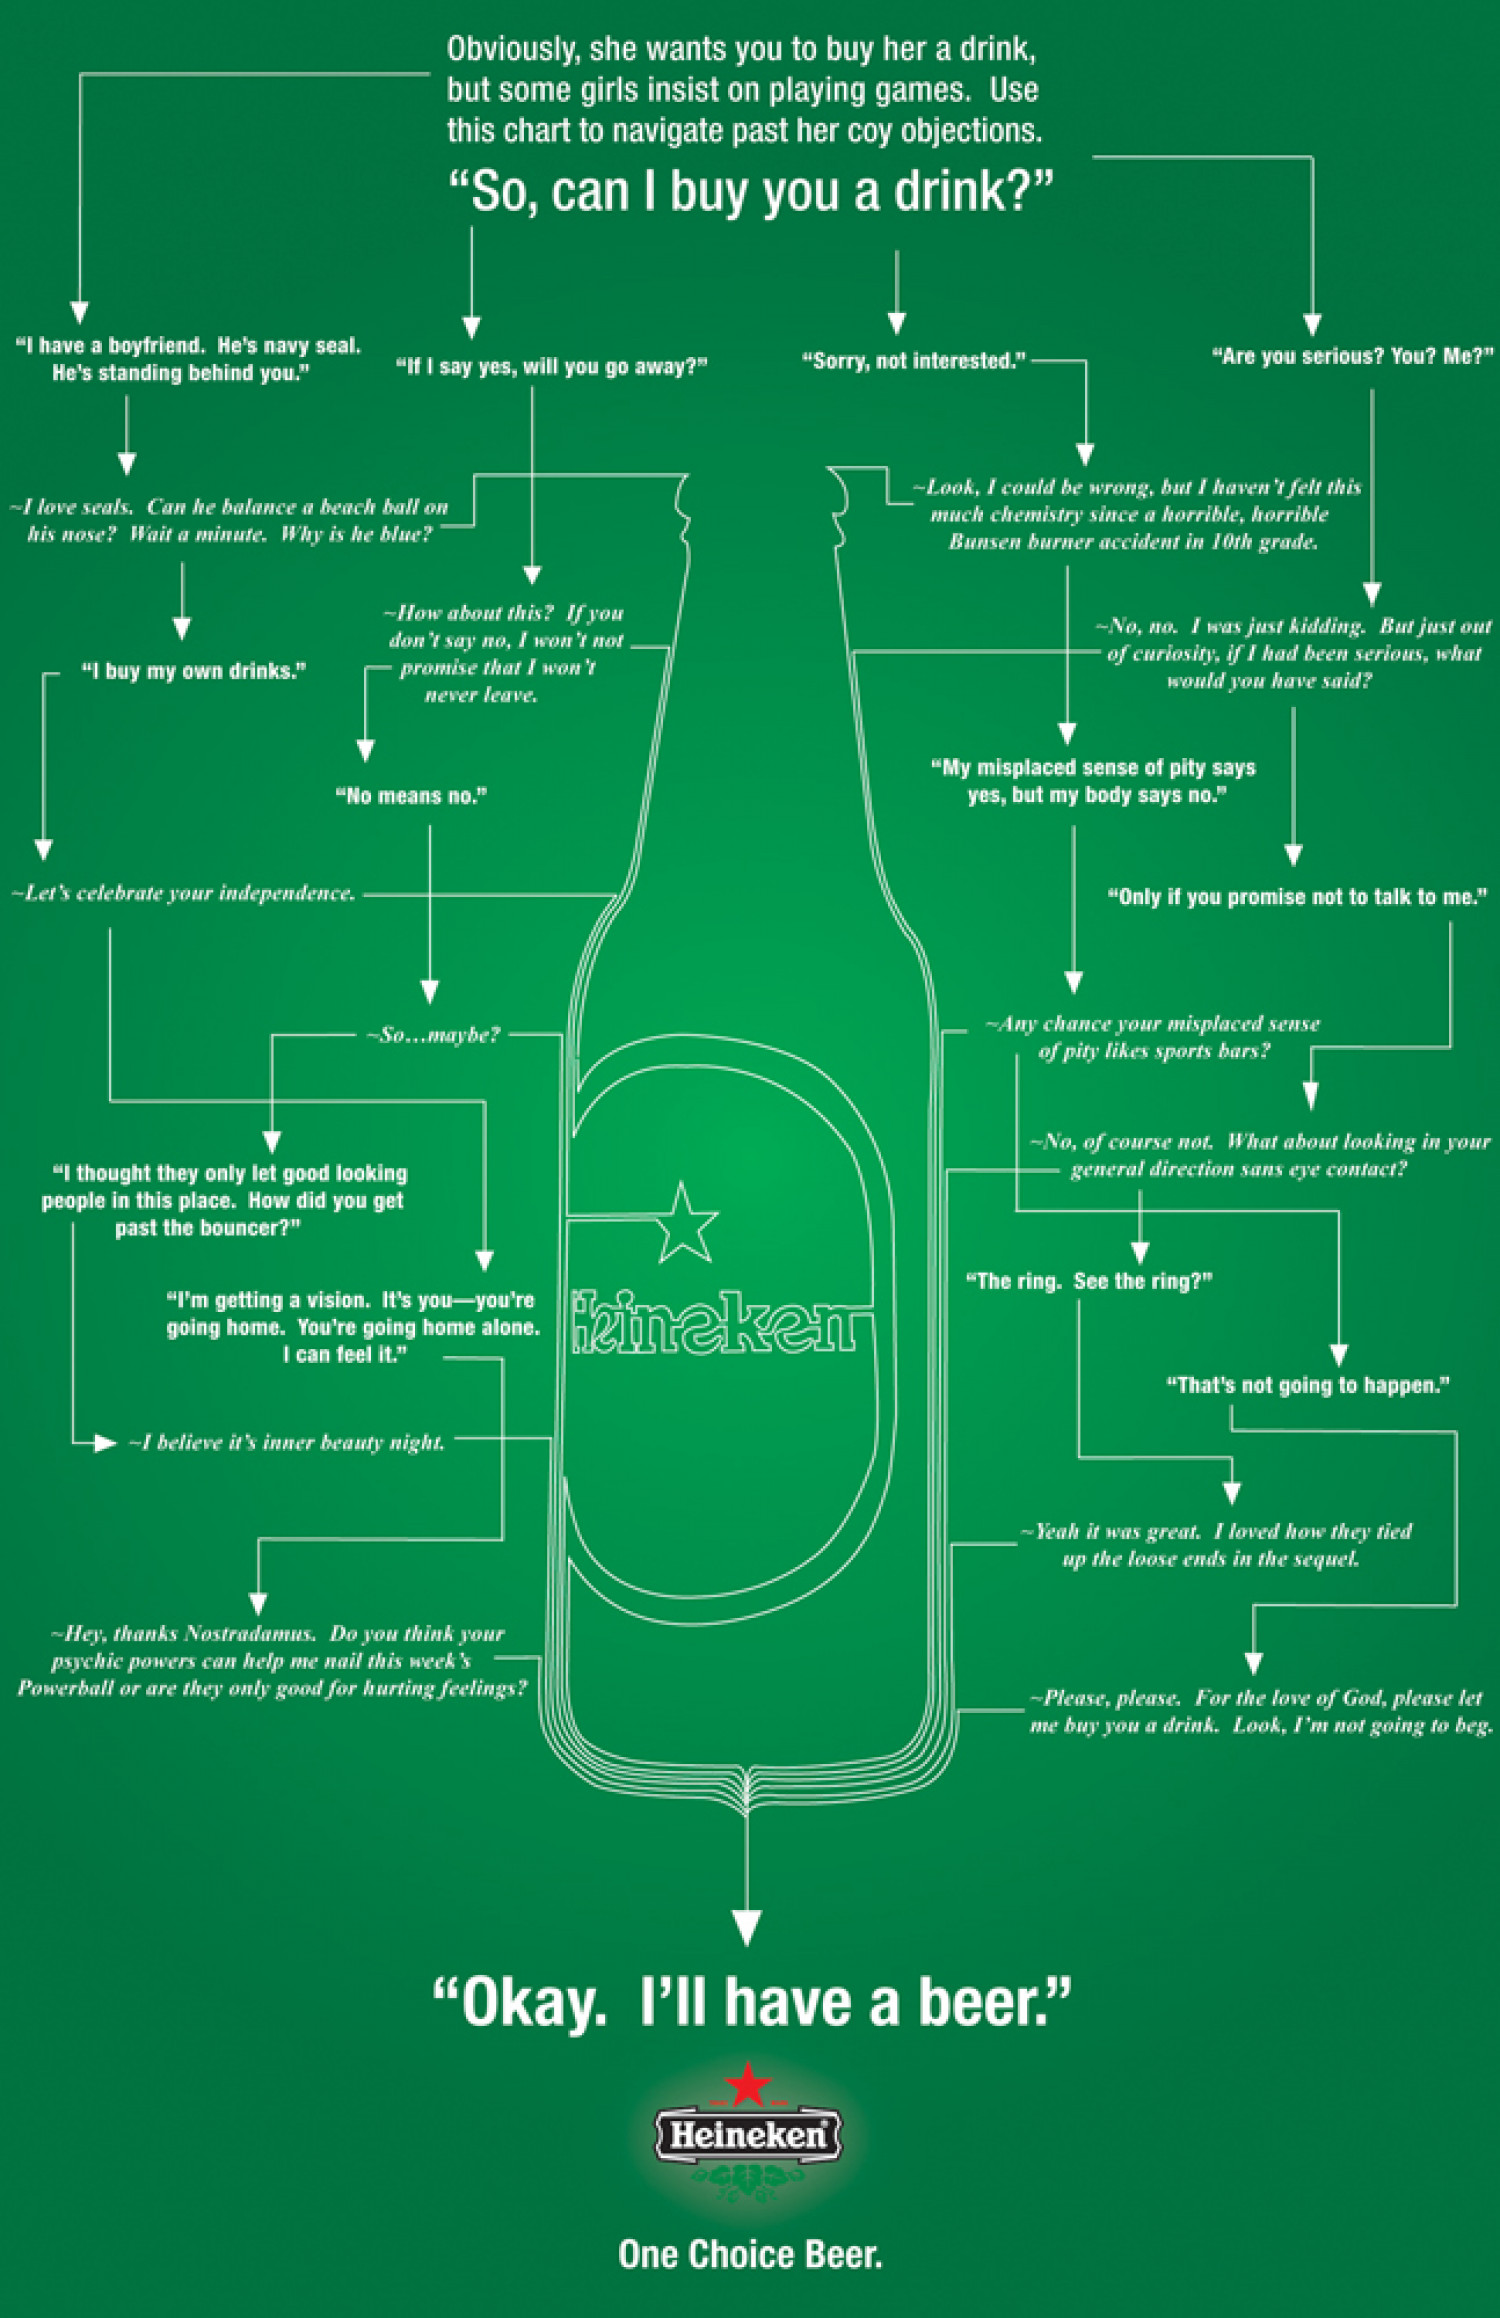 So Can I Buy you a Drink? Infographic